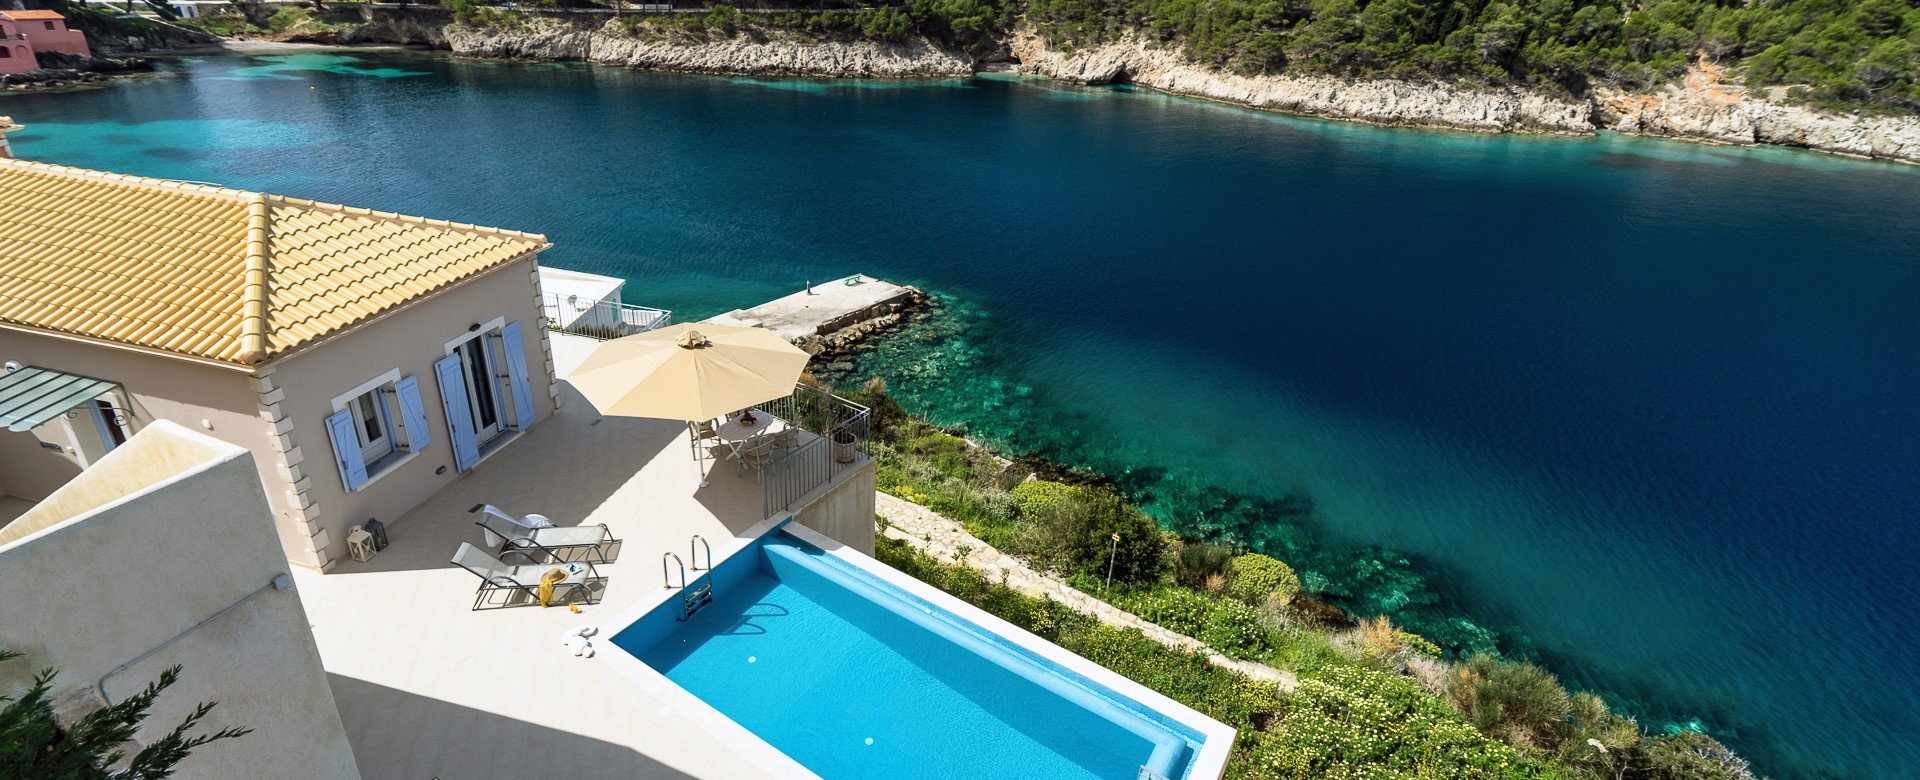 Aerial shot showing the outside area, pool and sea at Villa Plori, Assos, Kefalonia